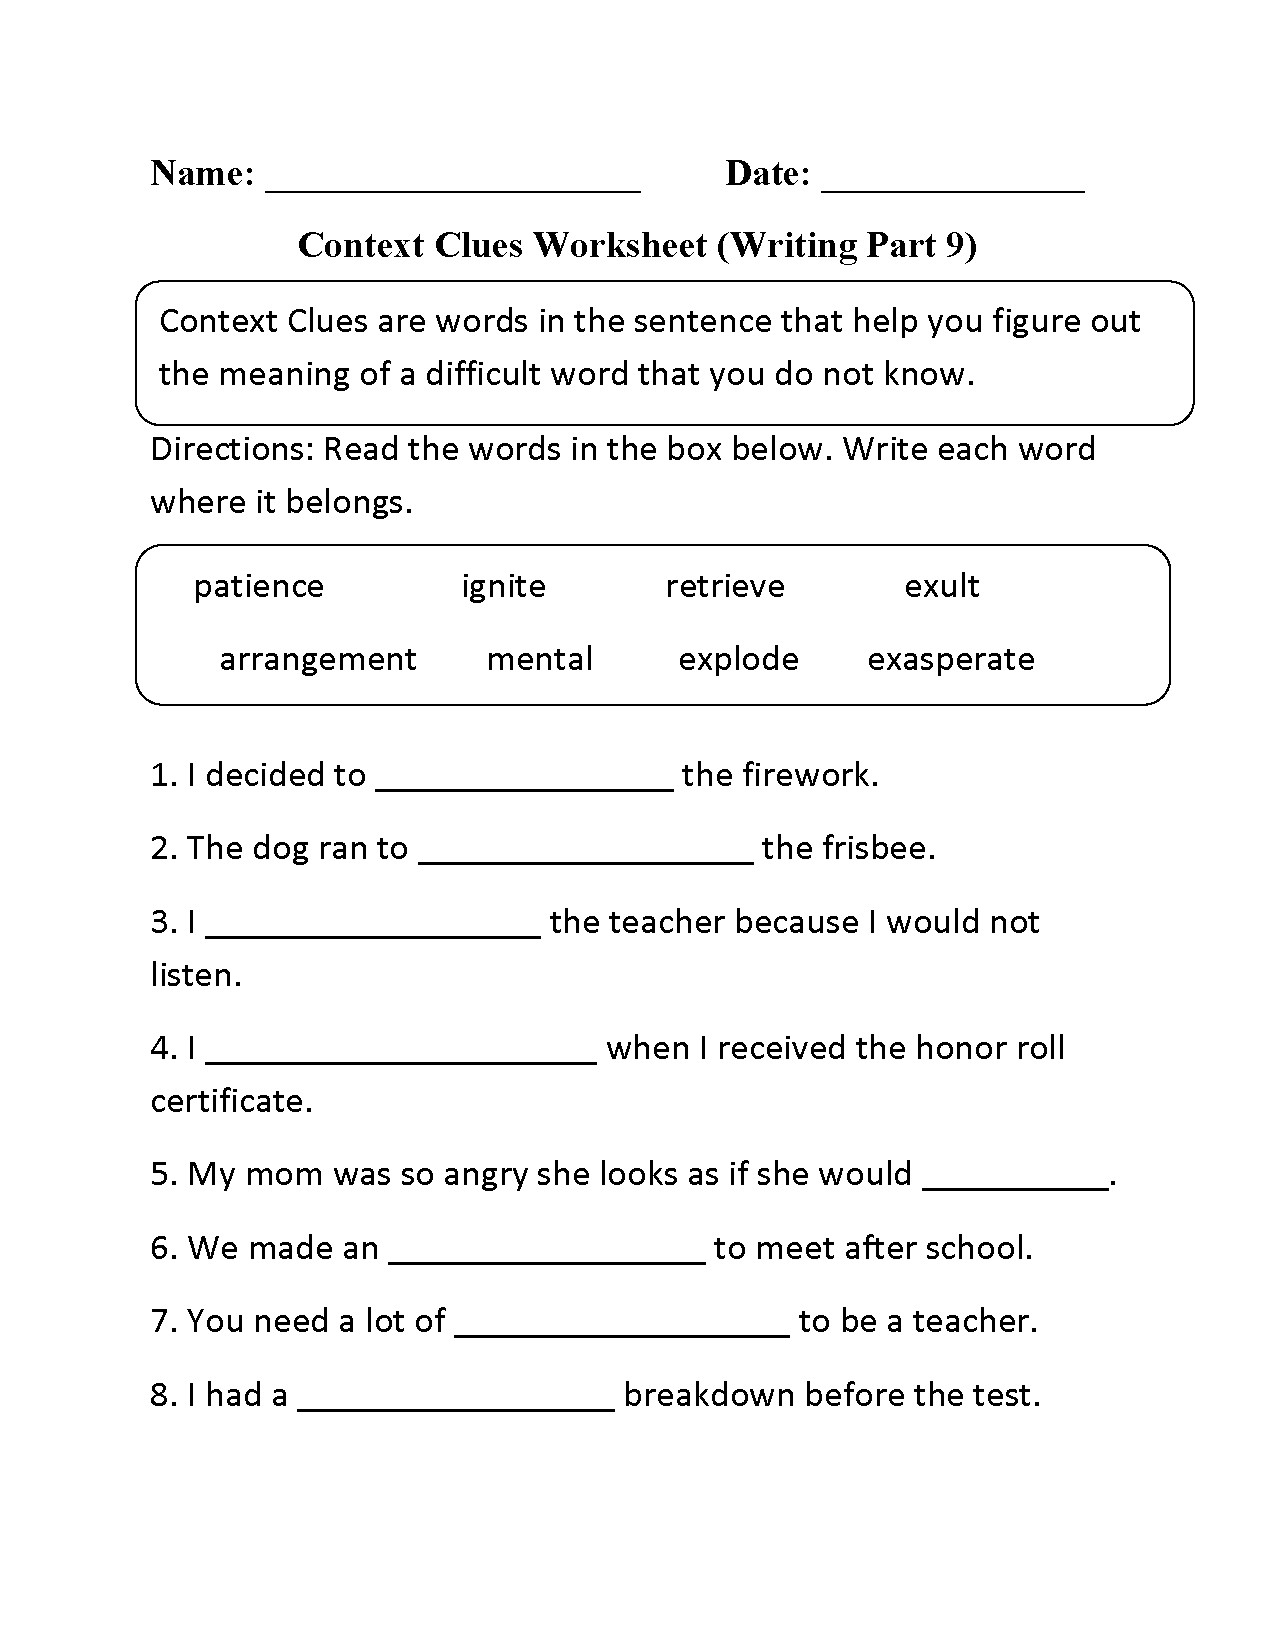 Context Clues Worksheets 4th Grade 5th Grade Context Clues Worksheets